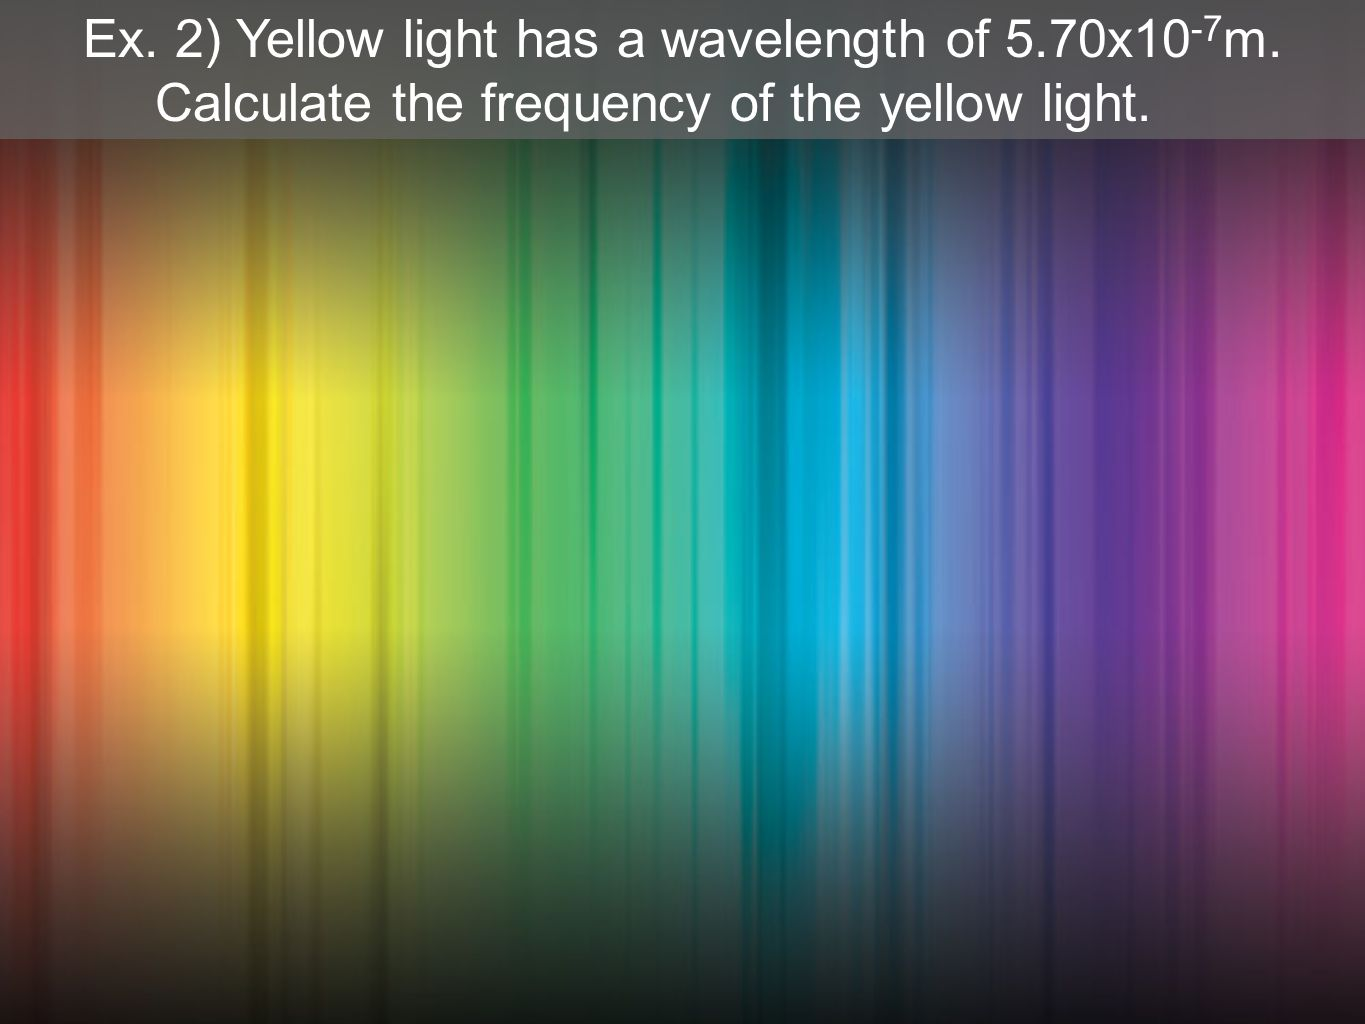 Ex. 2) Yellow light has a wavelength of 5.70x10 -7 m. Calculate the frequency of the yellow light.